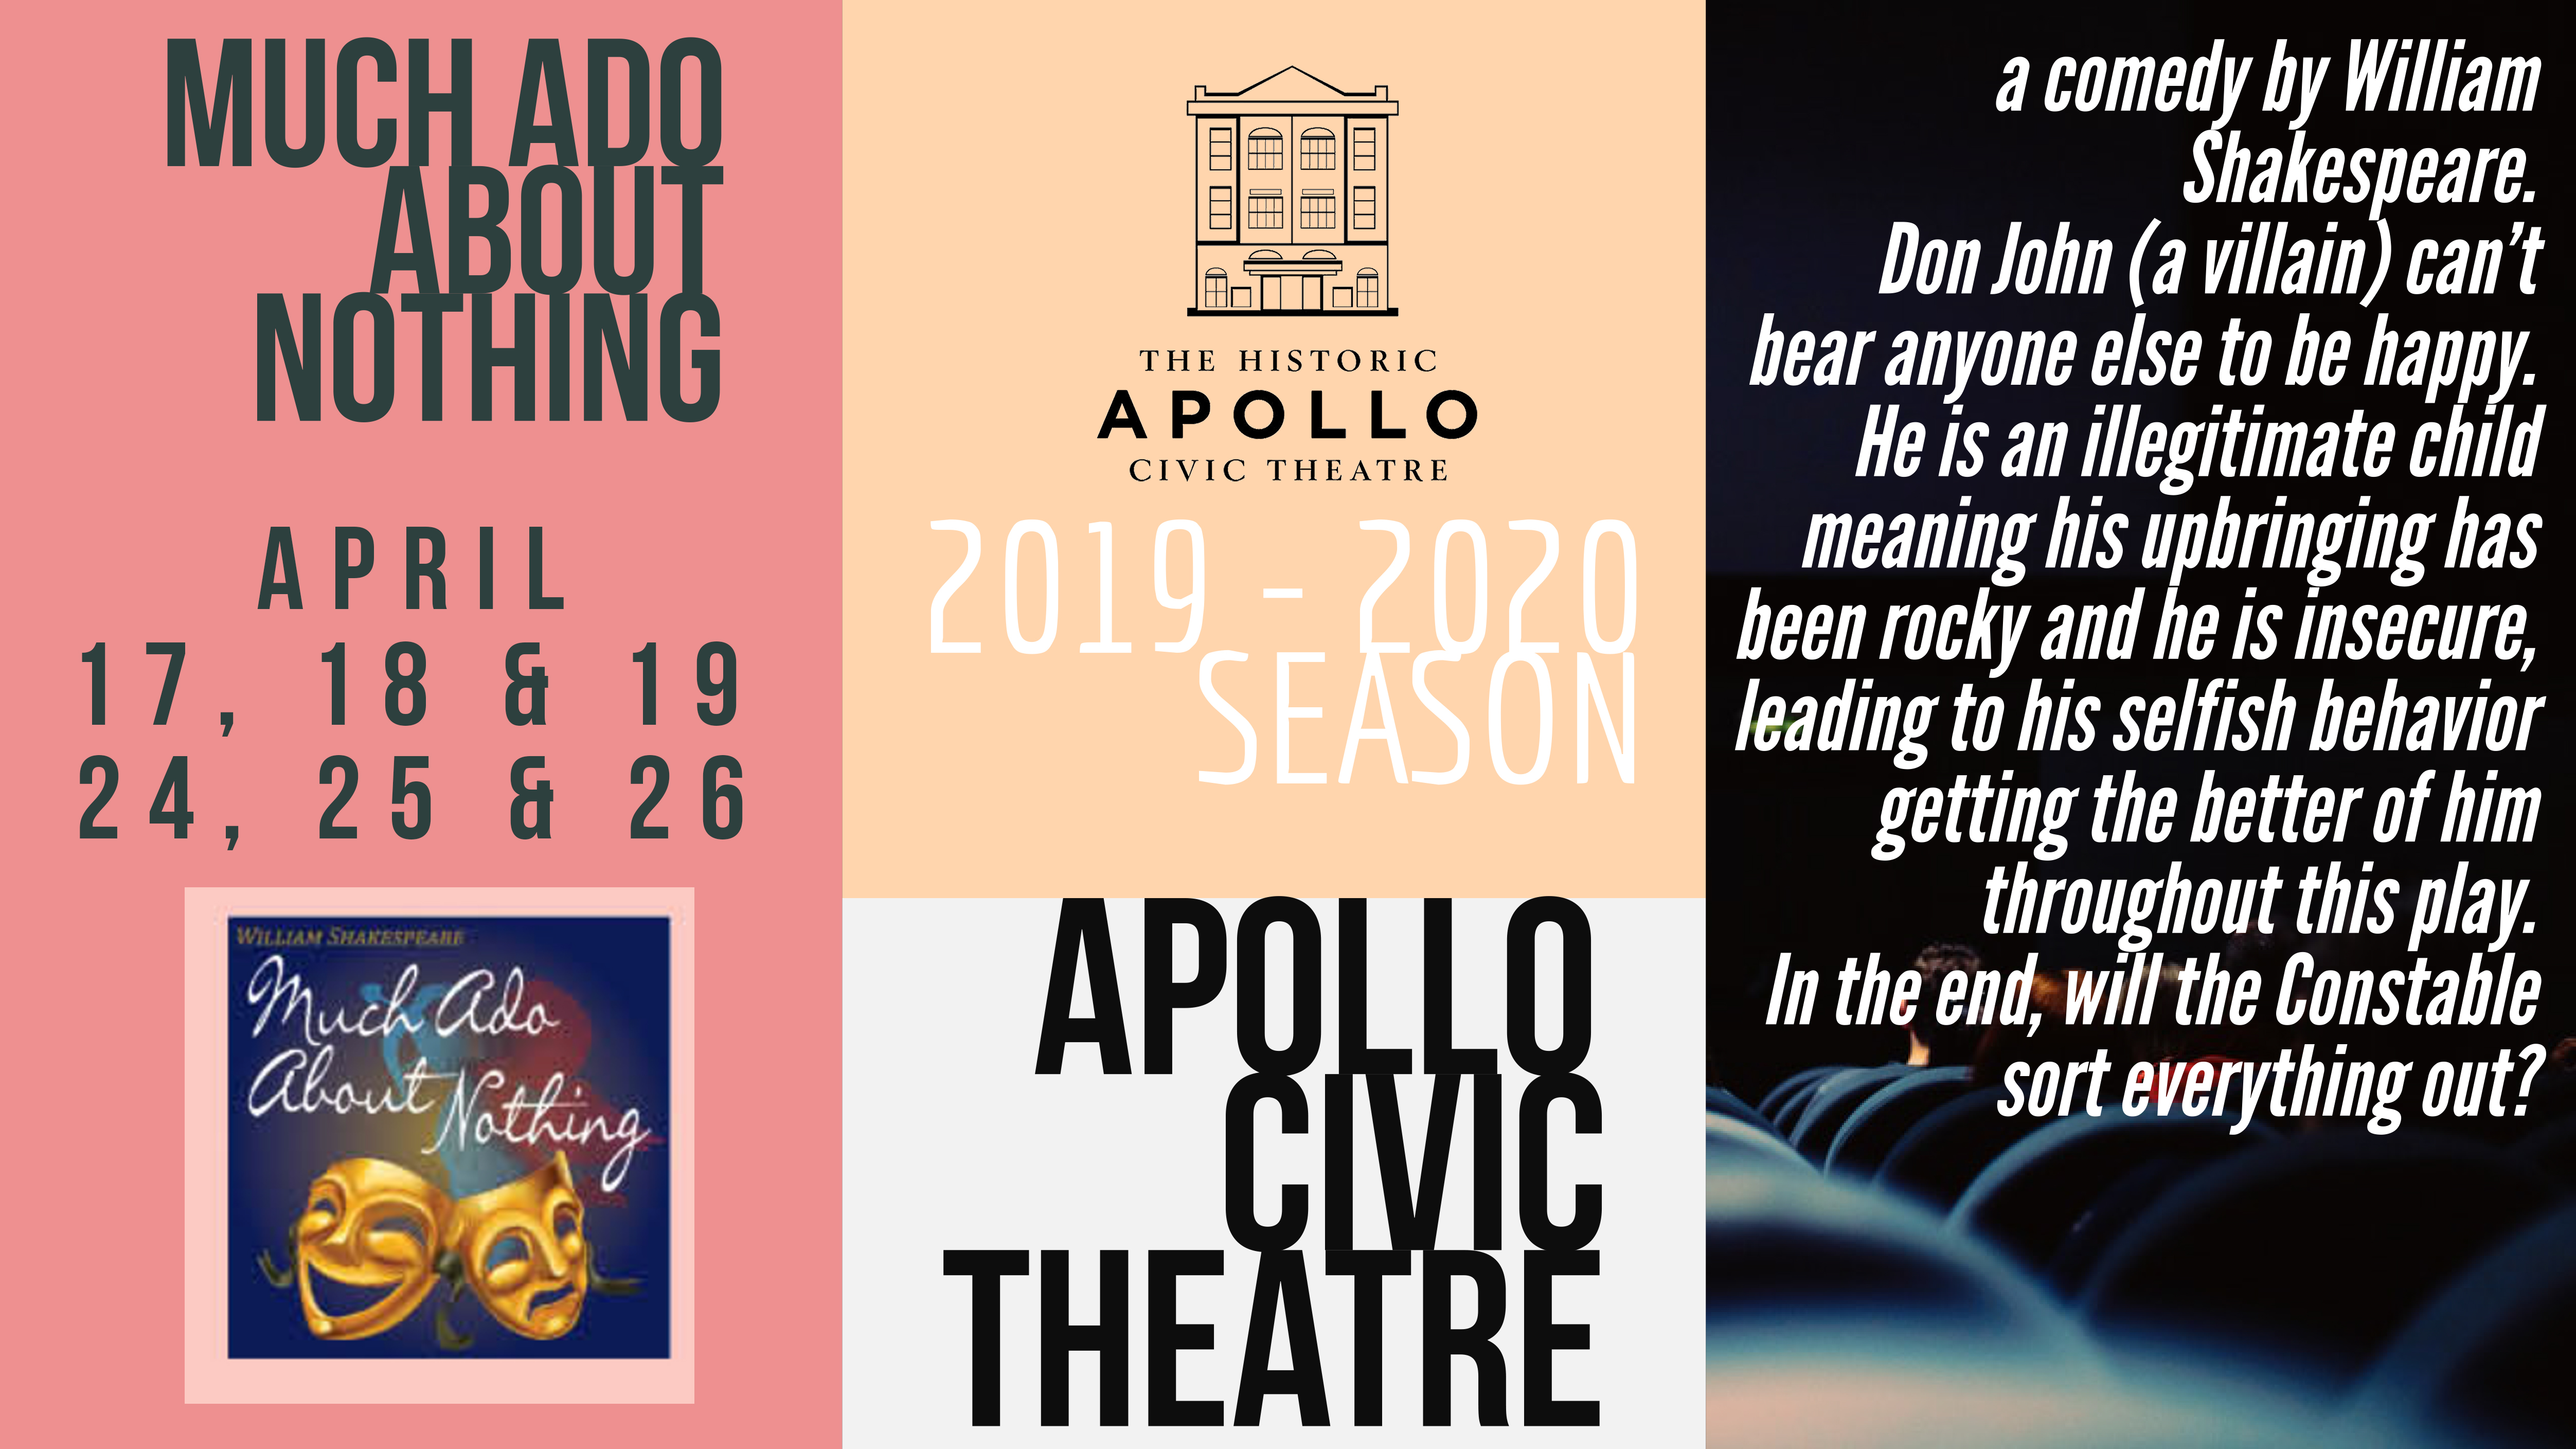 The Apollo Civic Theatre Announces Much Ado About Nothing Apollo Civic Theatre